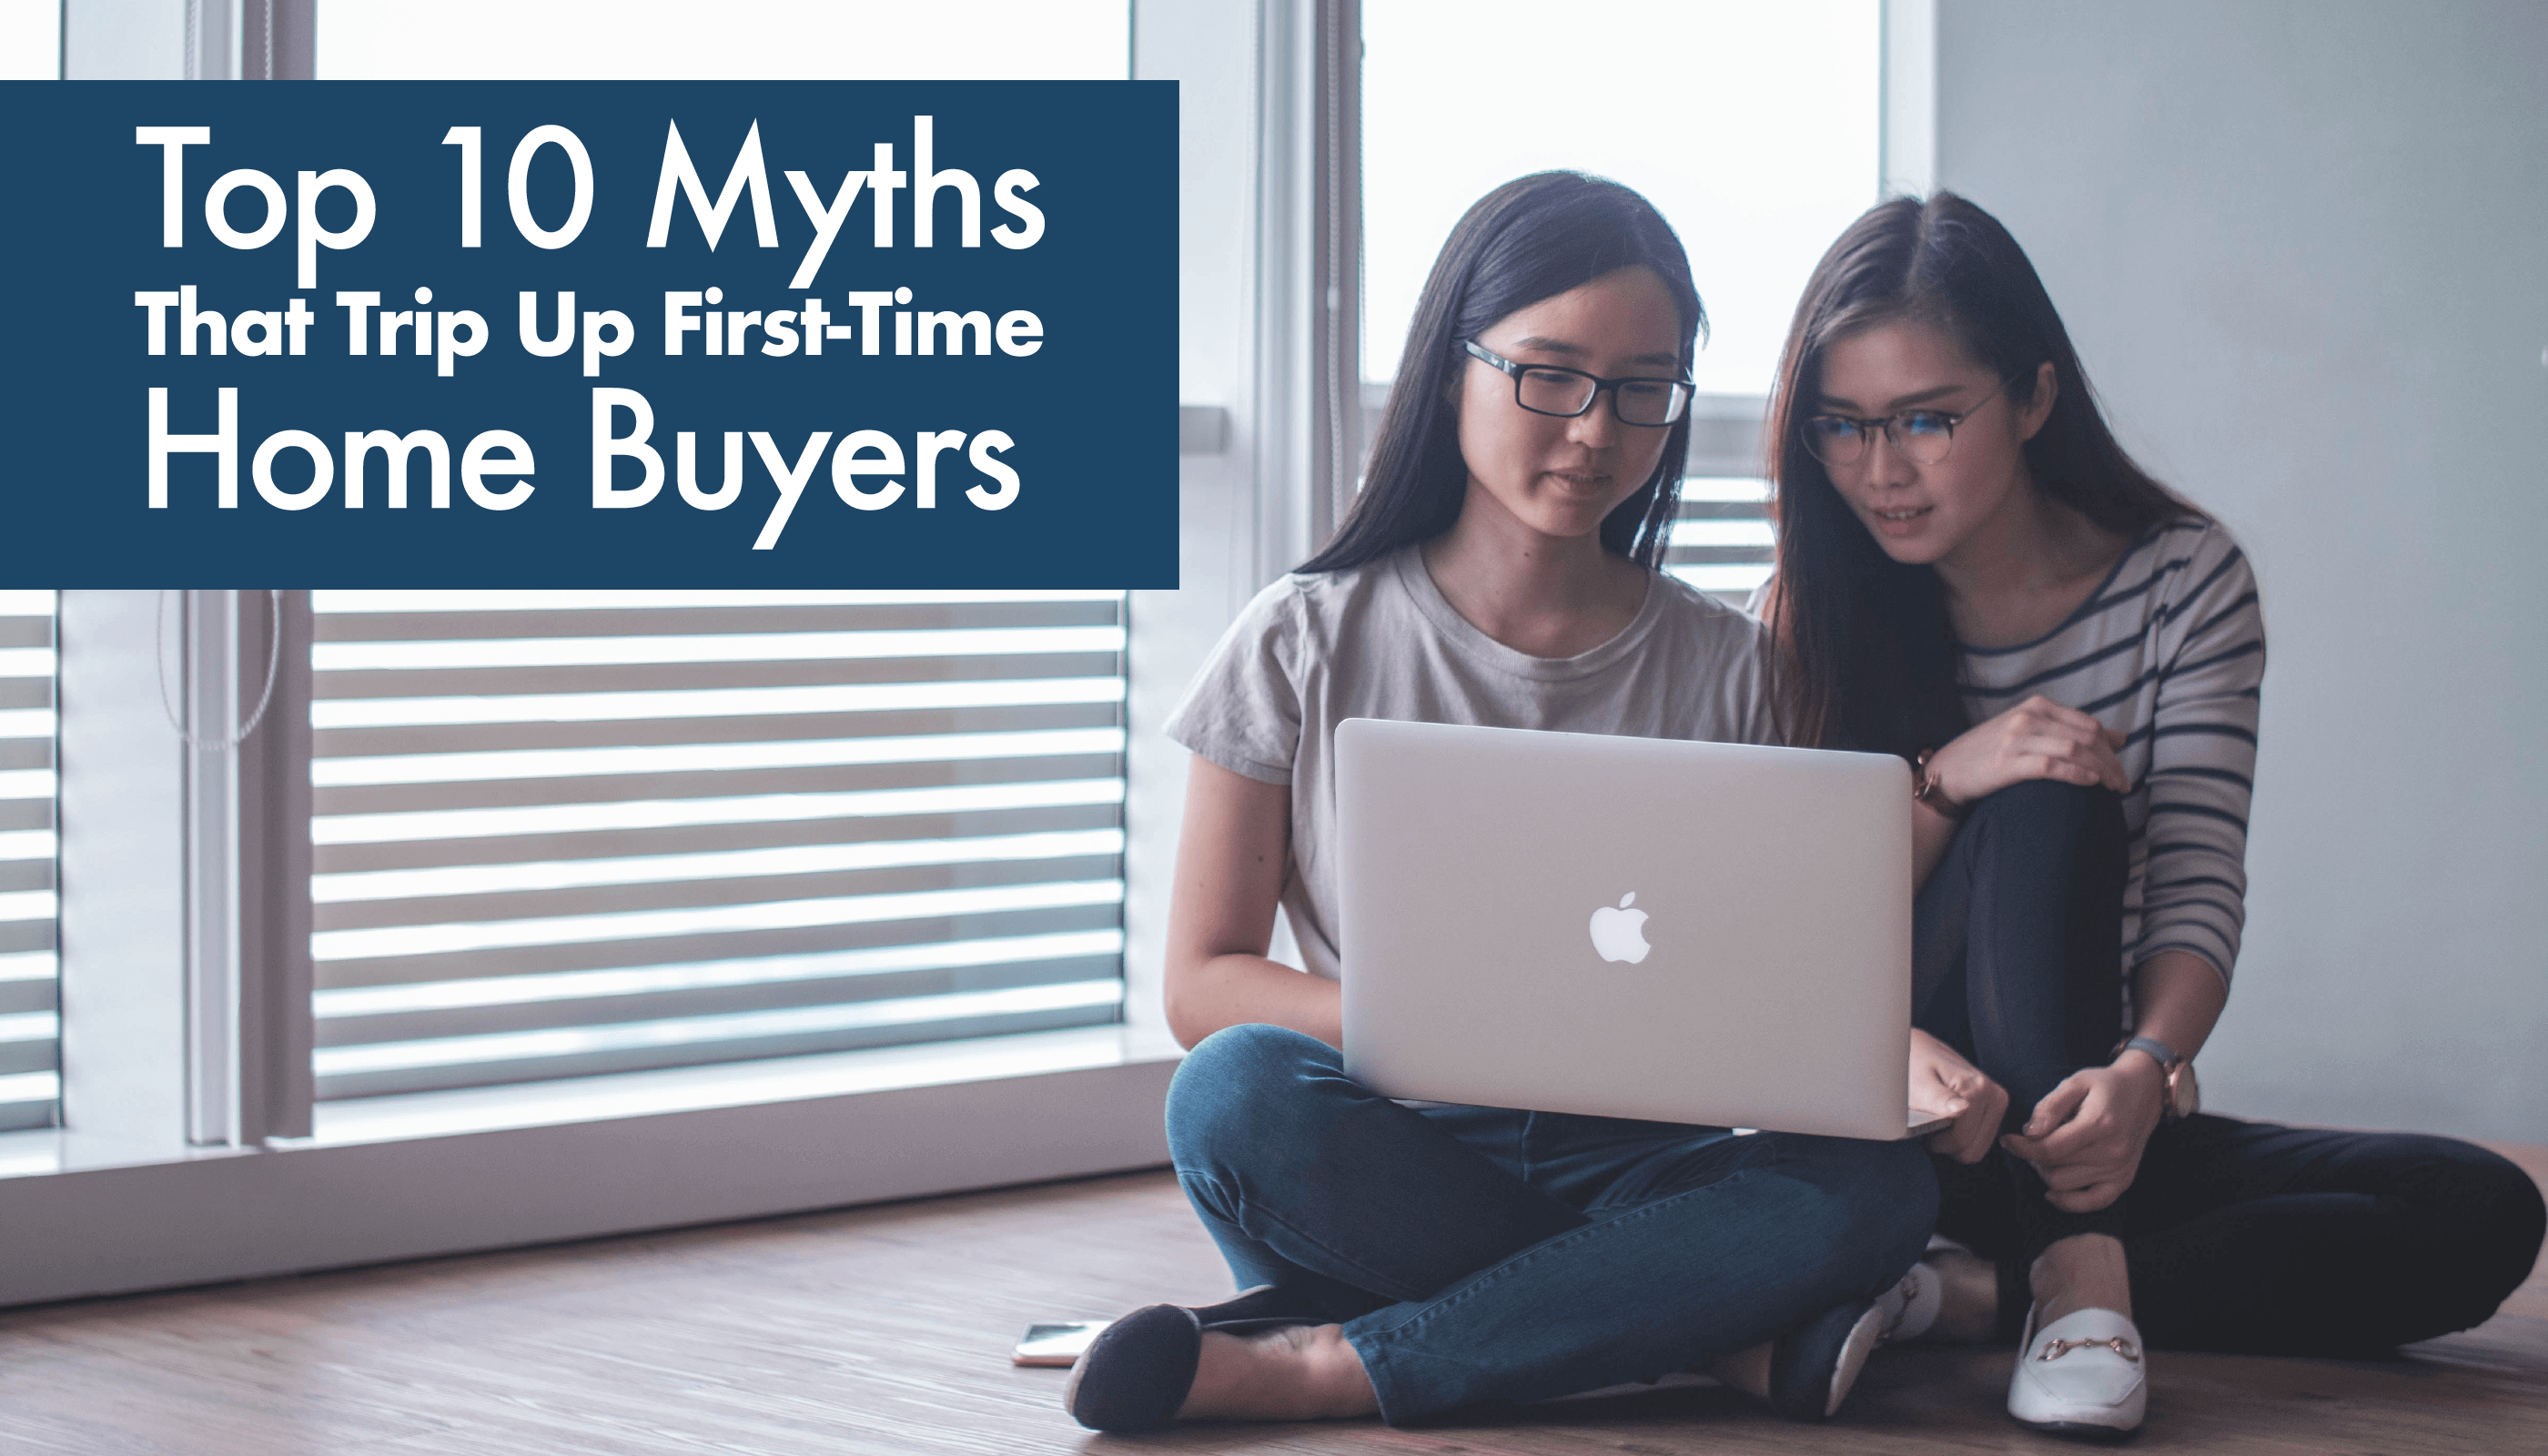 10 Myths That Trip Up Home Buyers